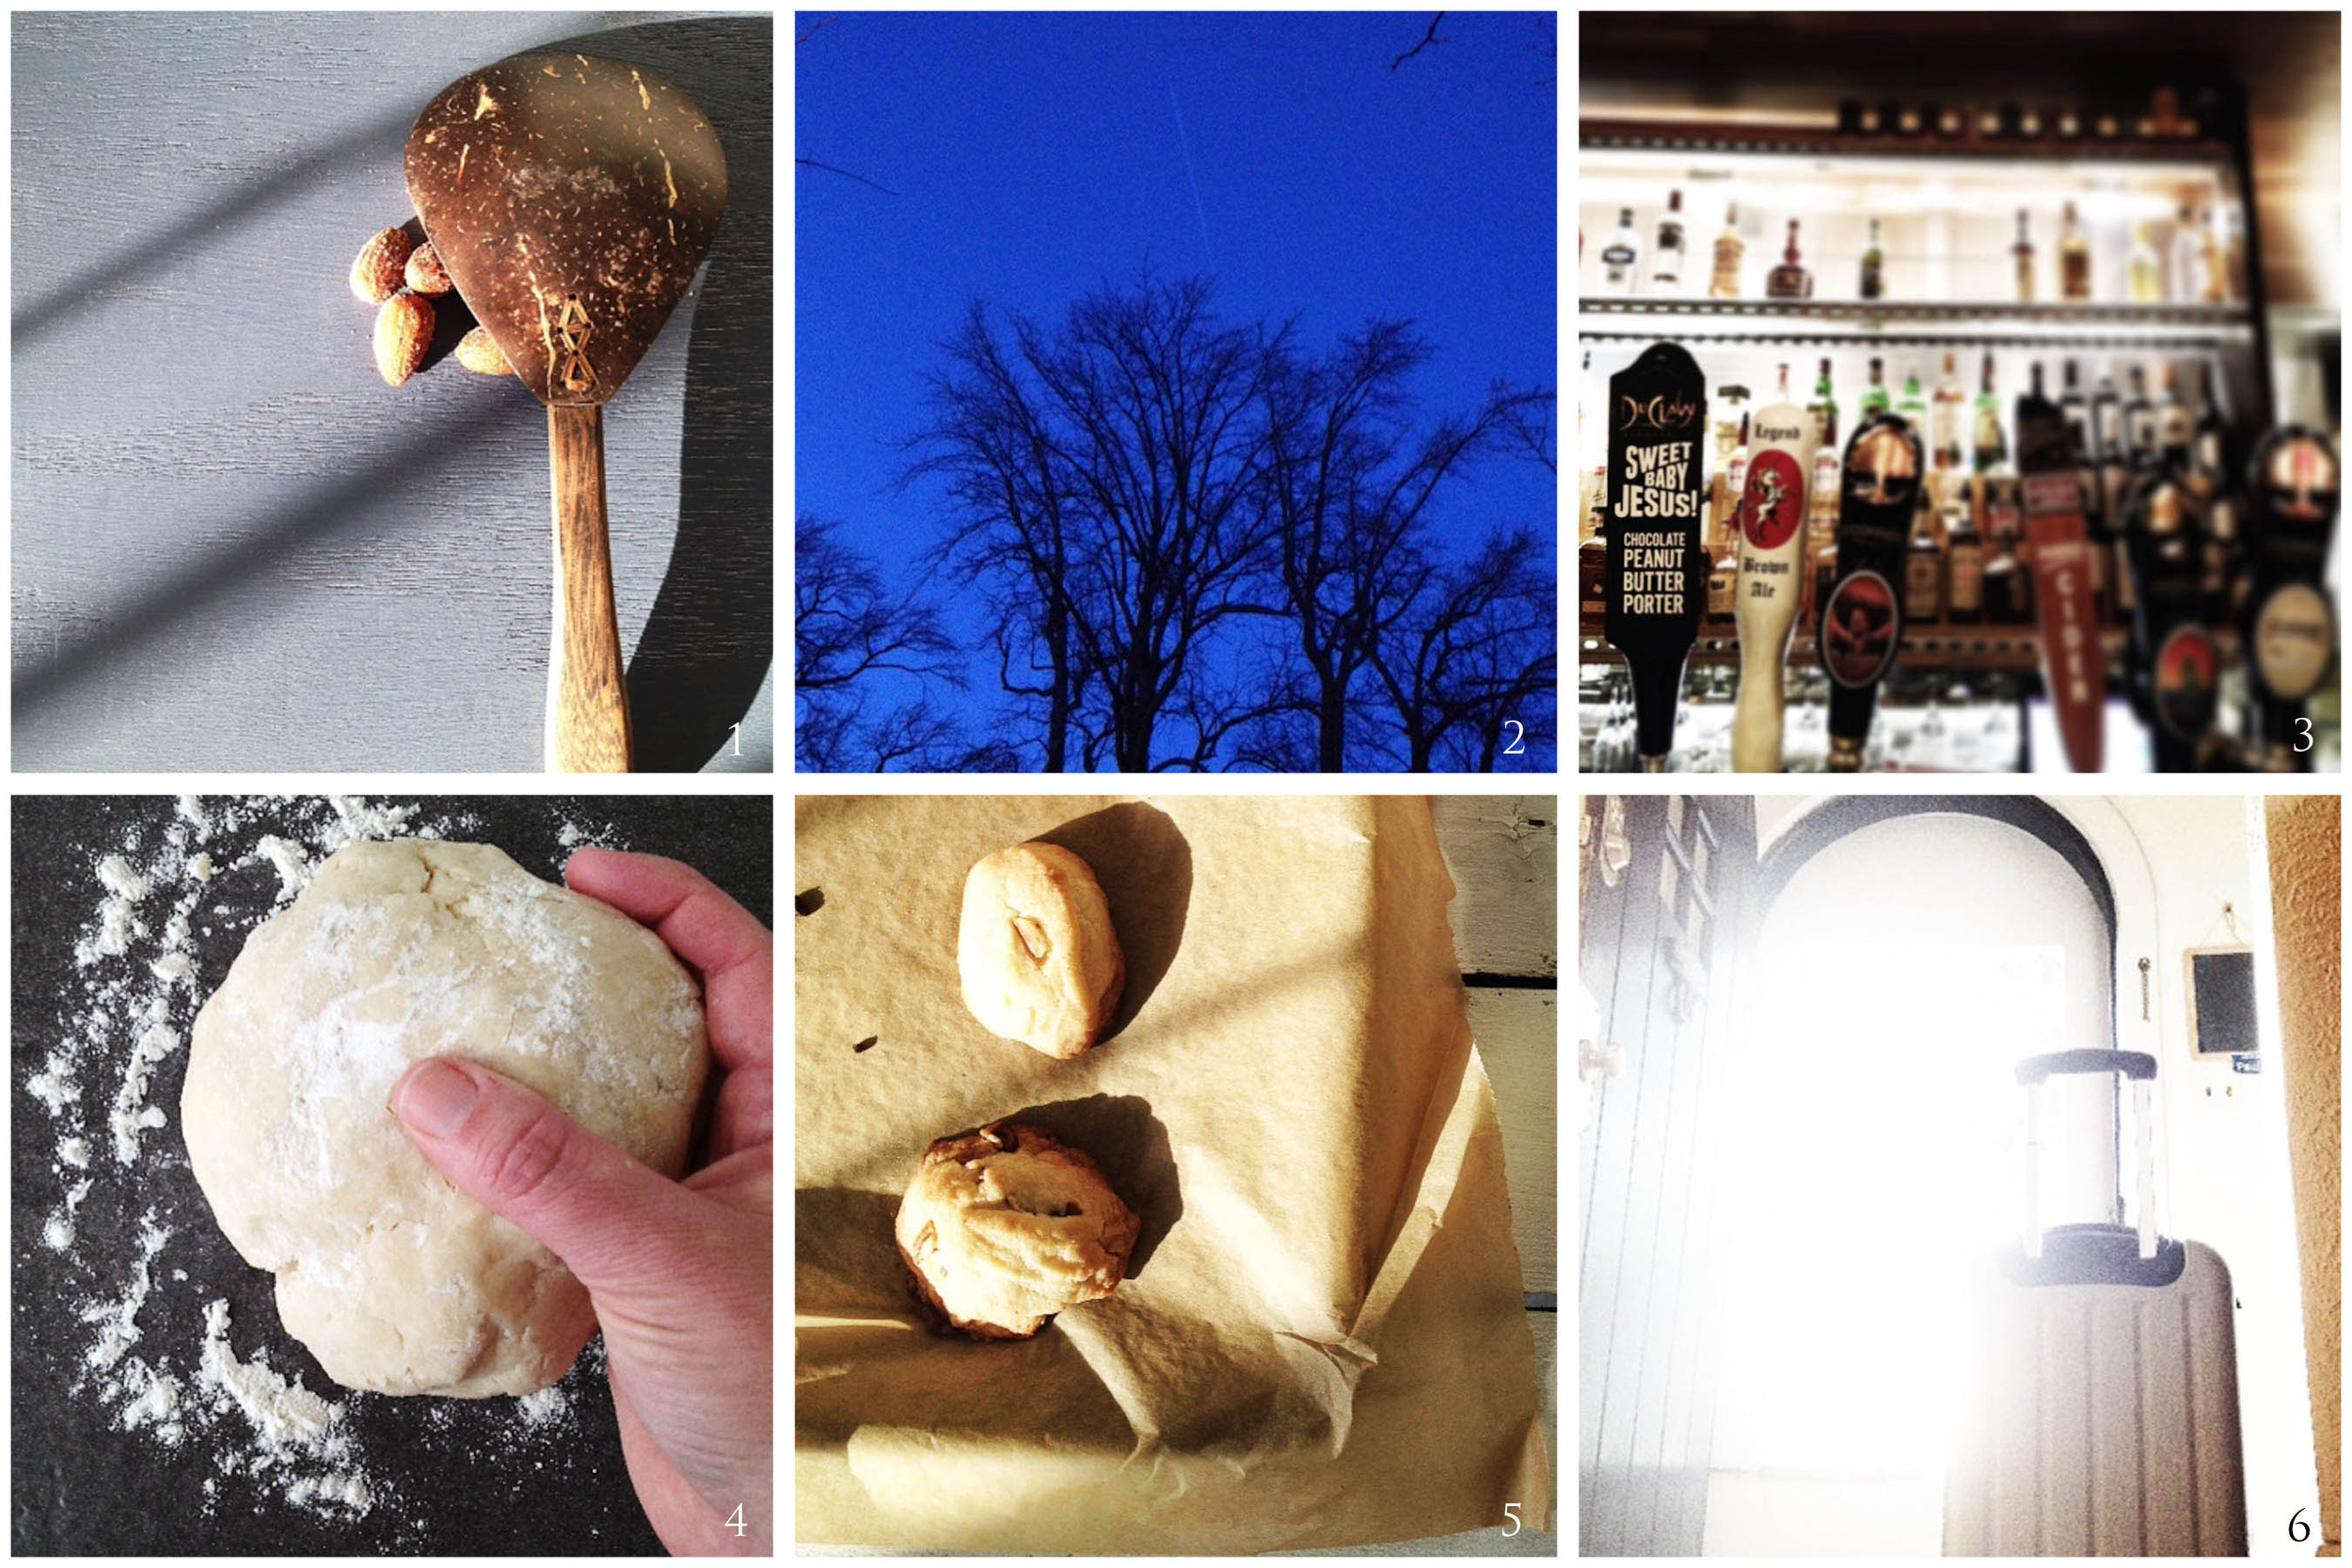 1. Afternoon snack | 2. Twilight comes later | 3. Sweet Baby Jesus! | 4. Pie Making | 5. Cookie Making | 6. Traveling Man